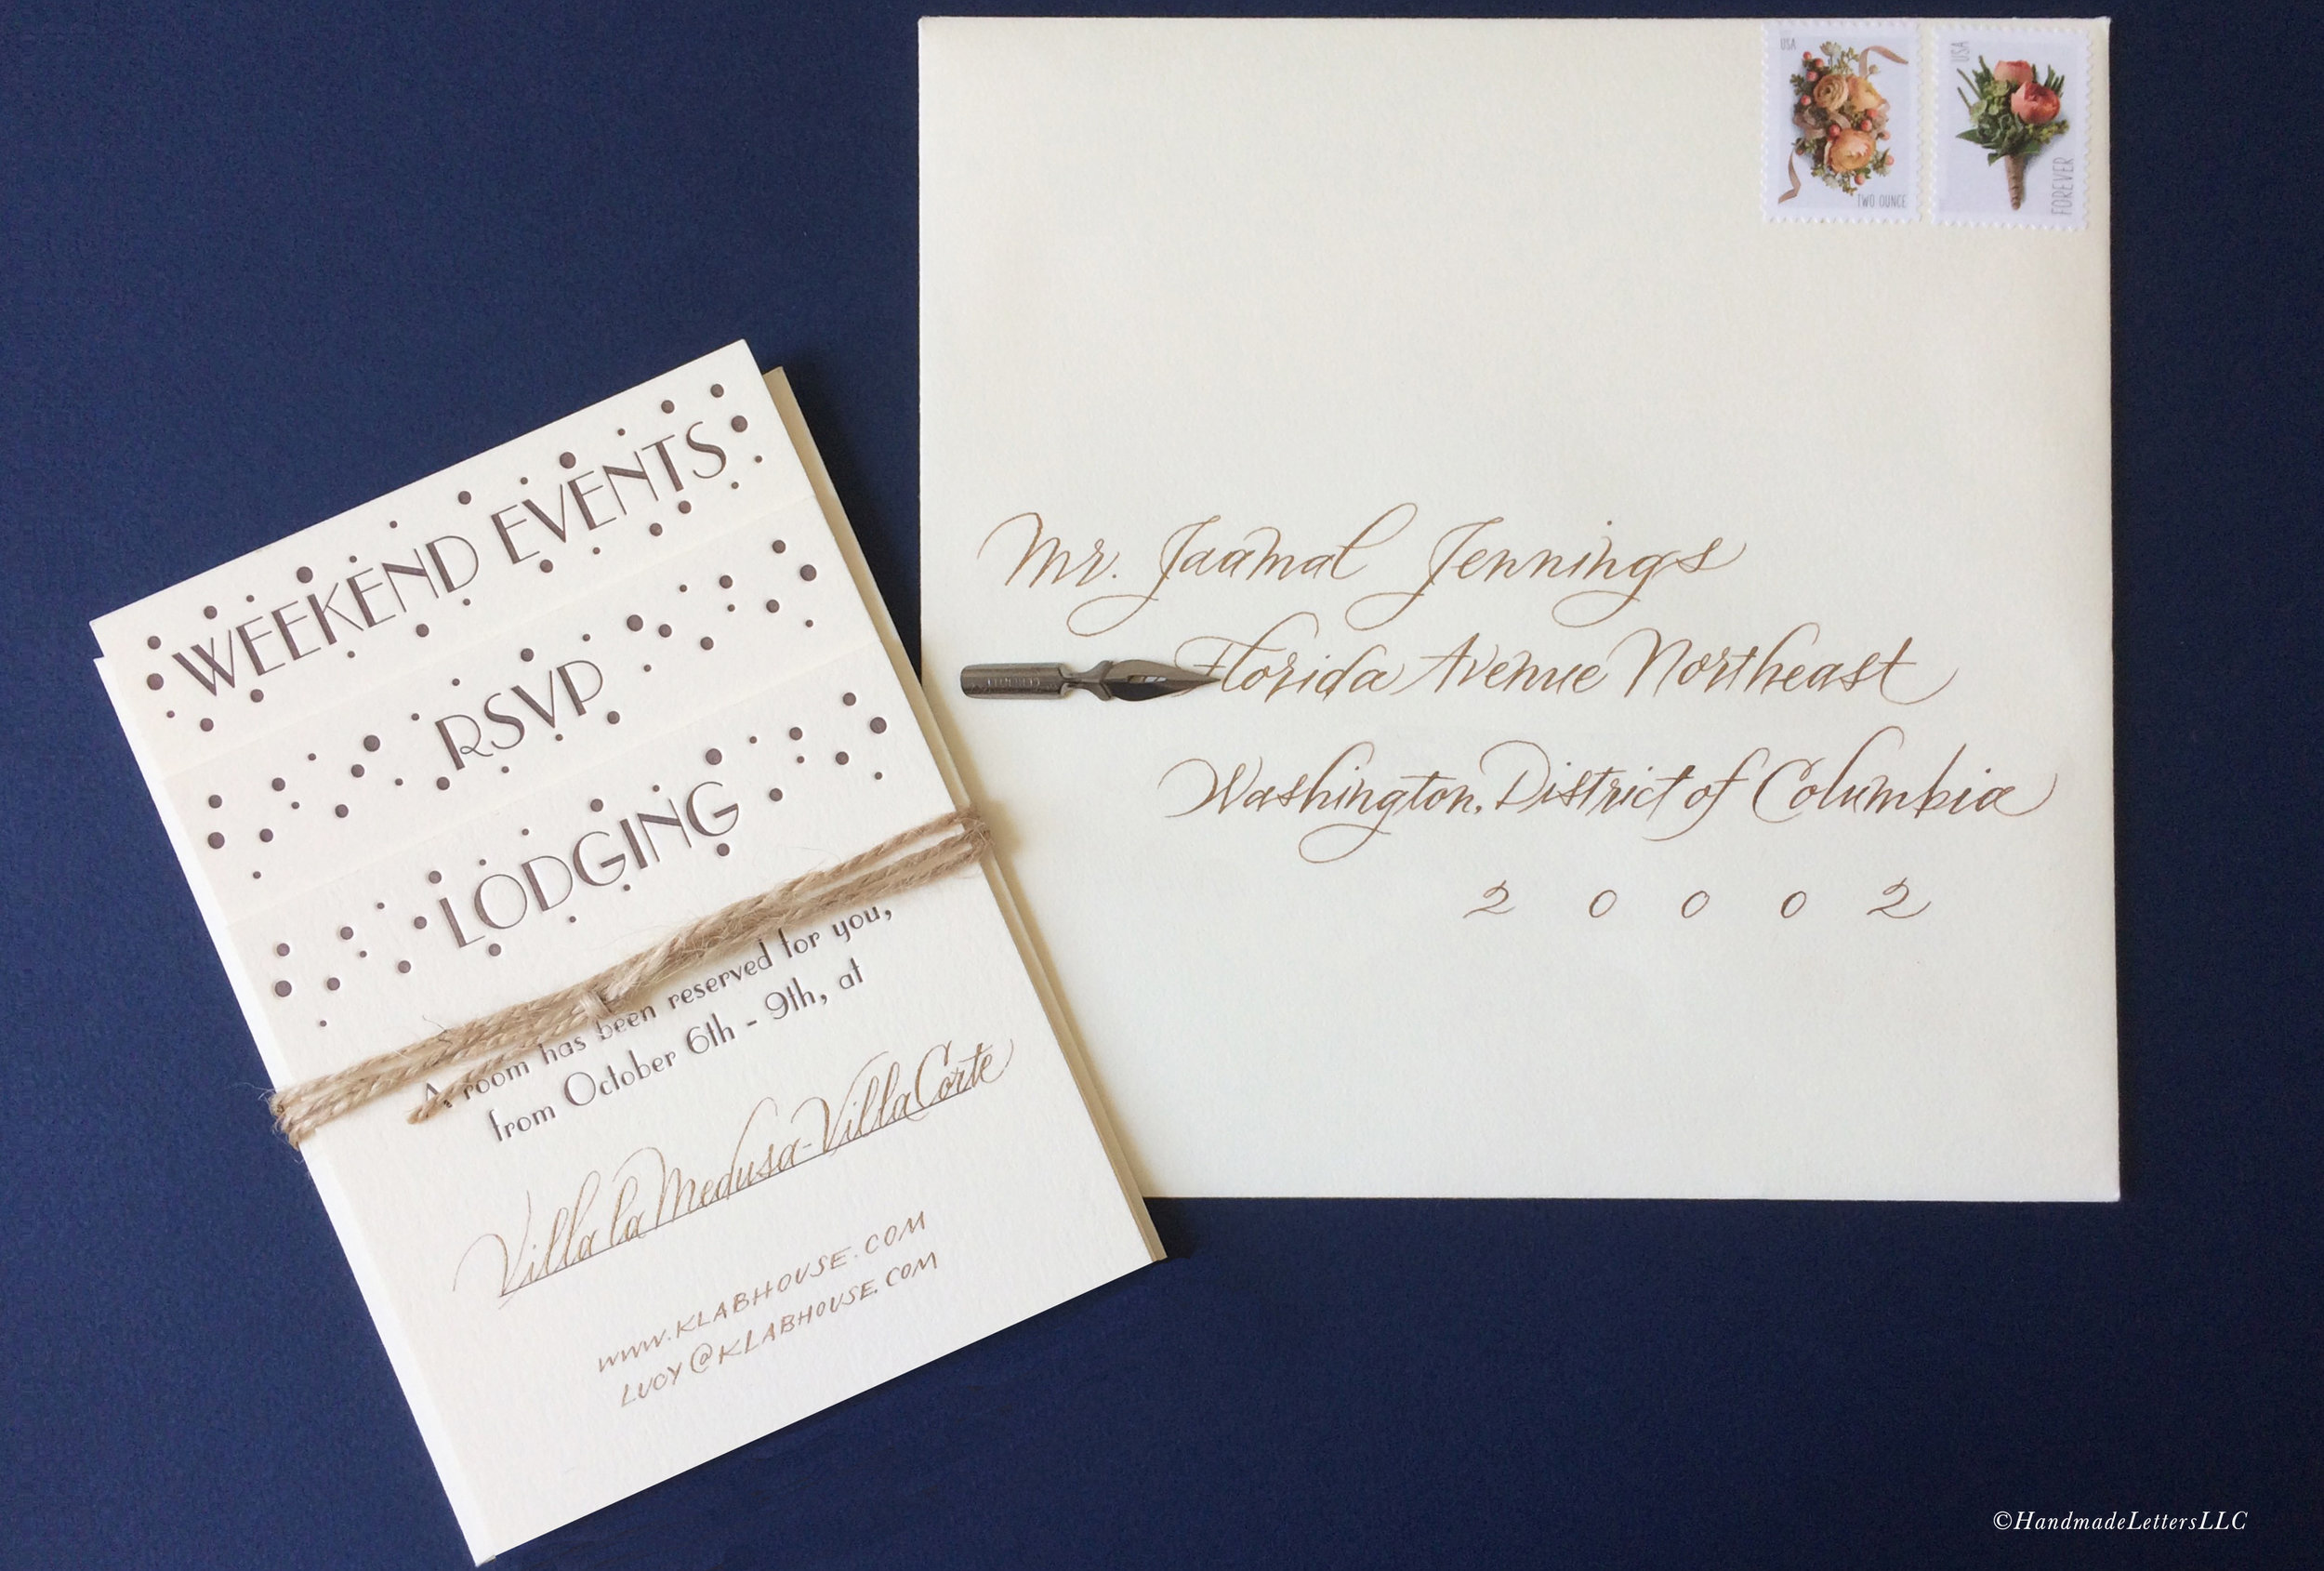 Handmade Letters - Wedding Envelopes in Modern Italic